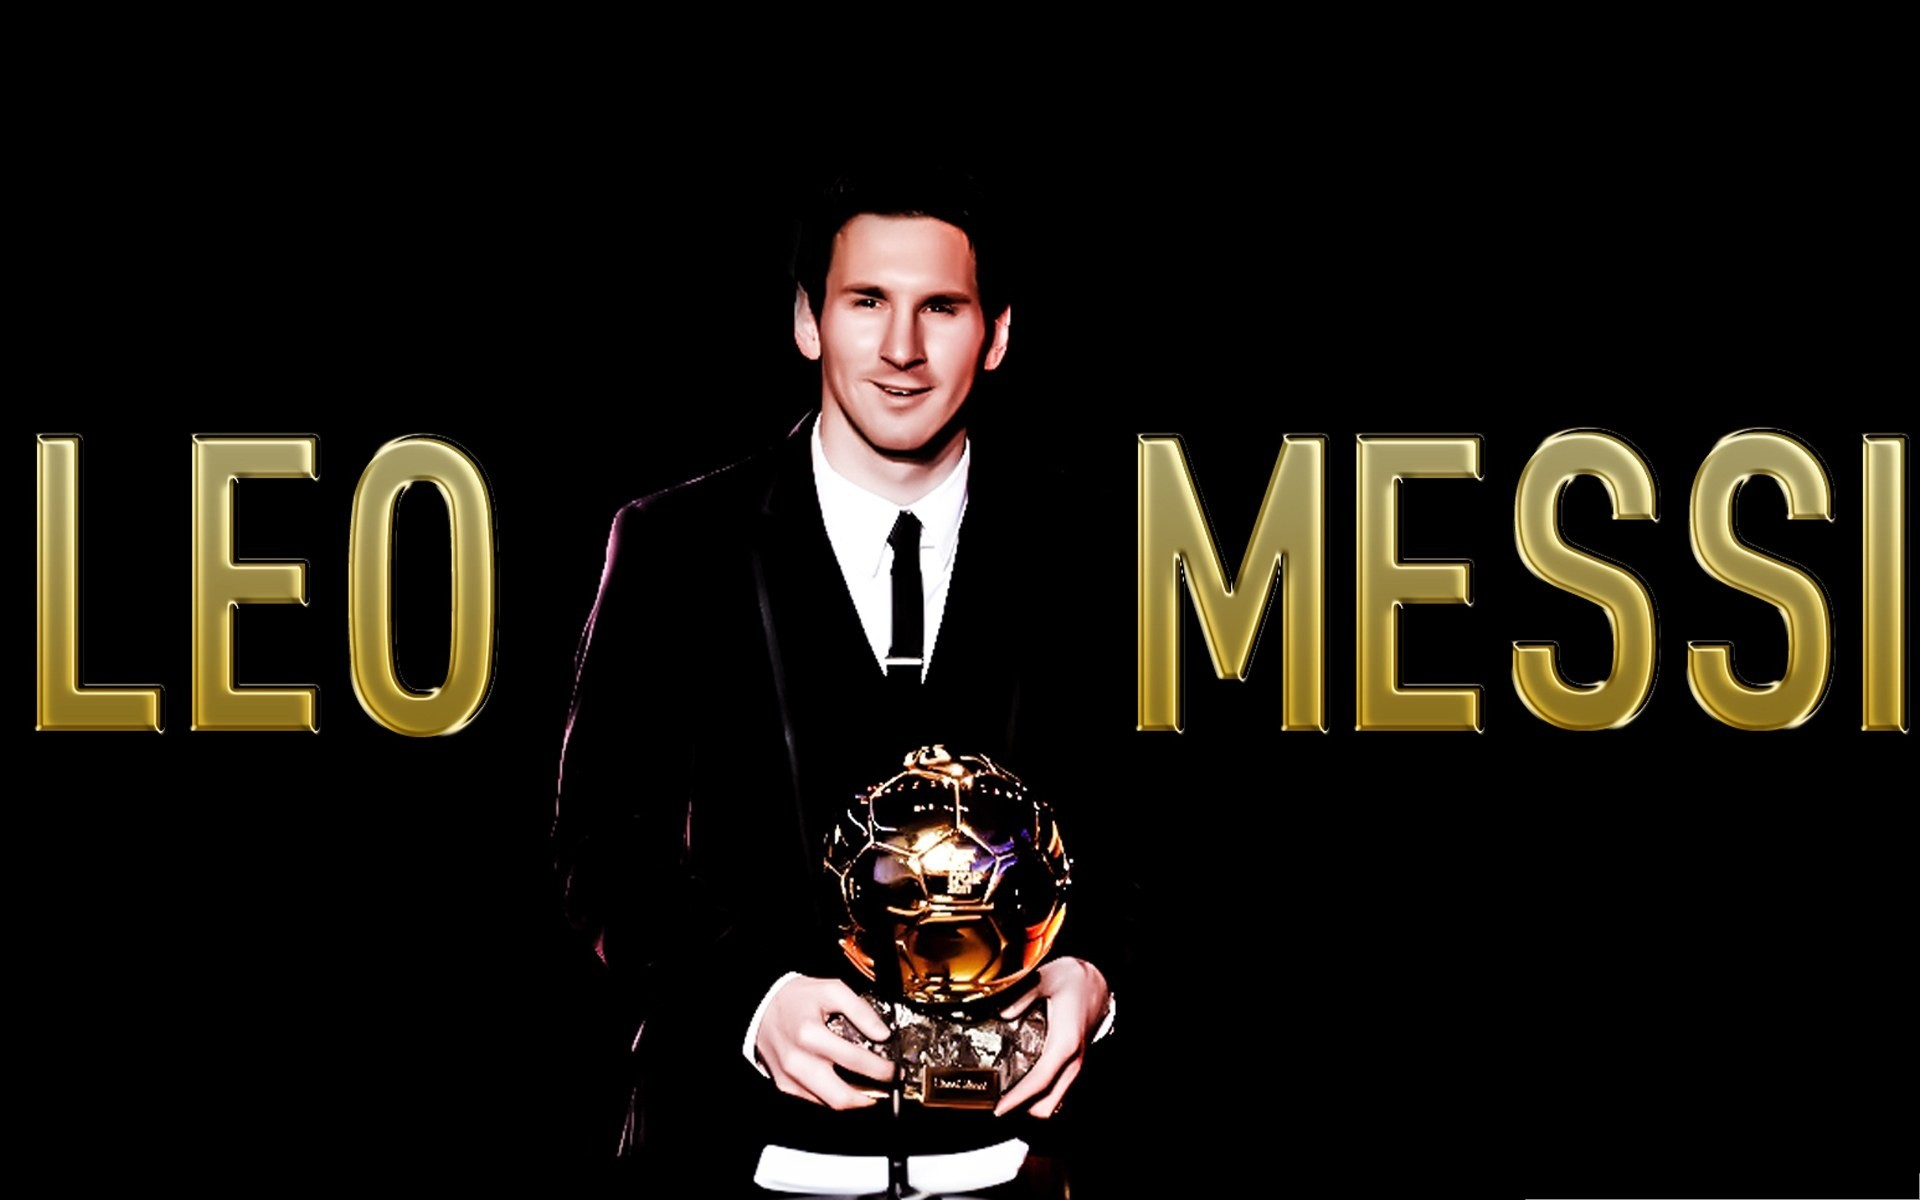 Leo Messi Wallpaper backgrounds